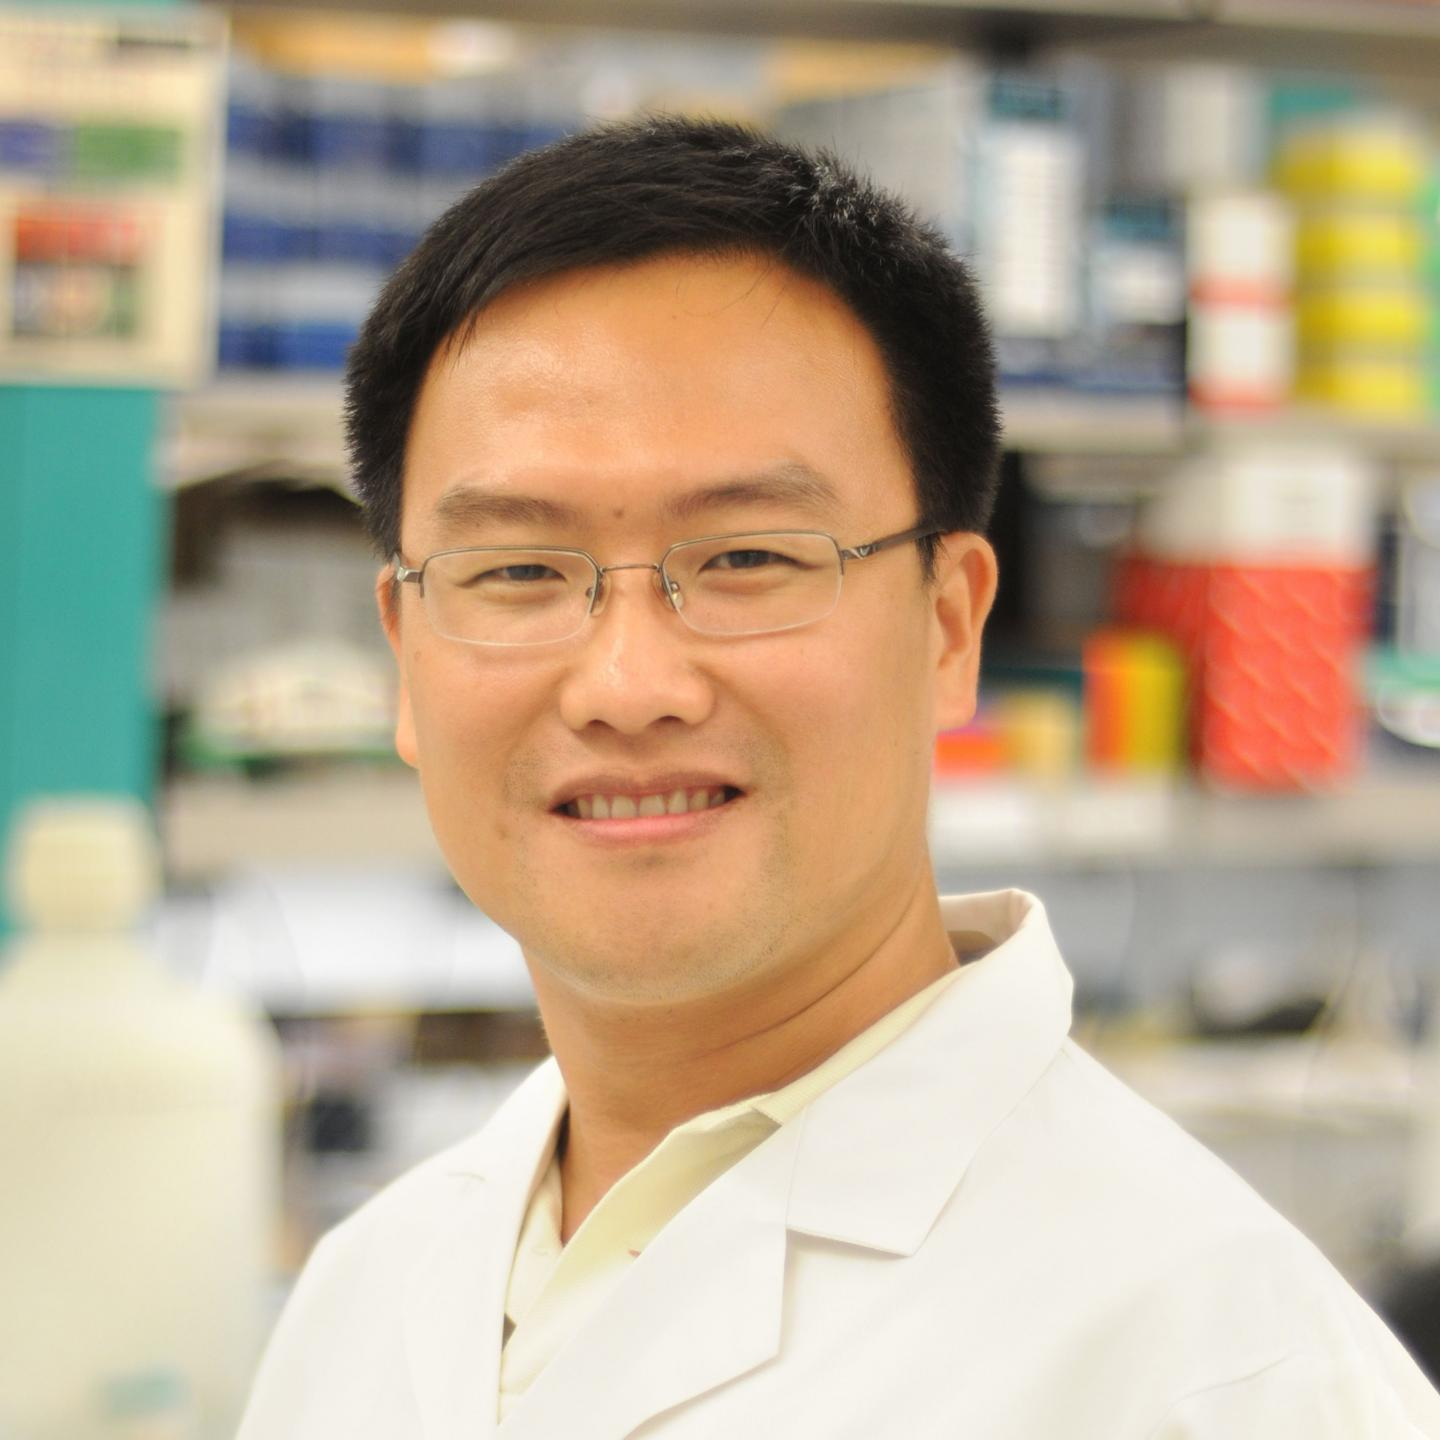 Xiang 'Shawn' Zhang, Baylor College of Medicine